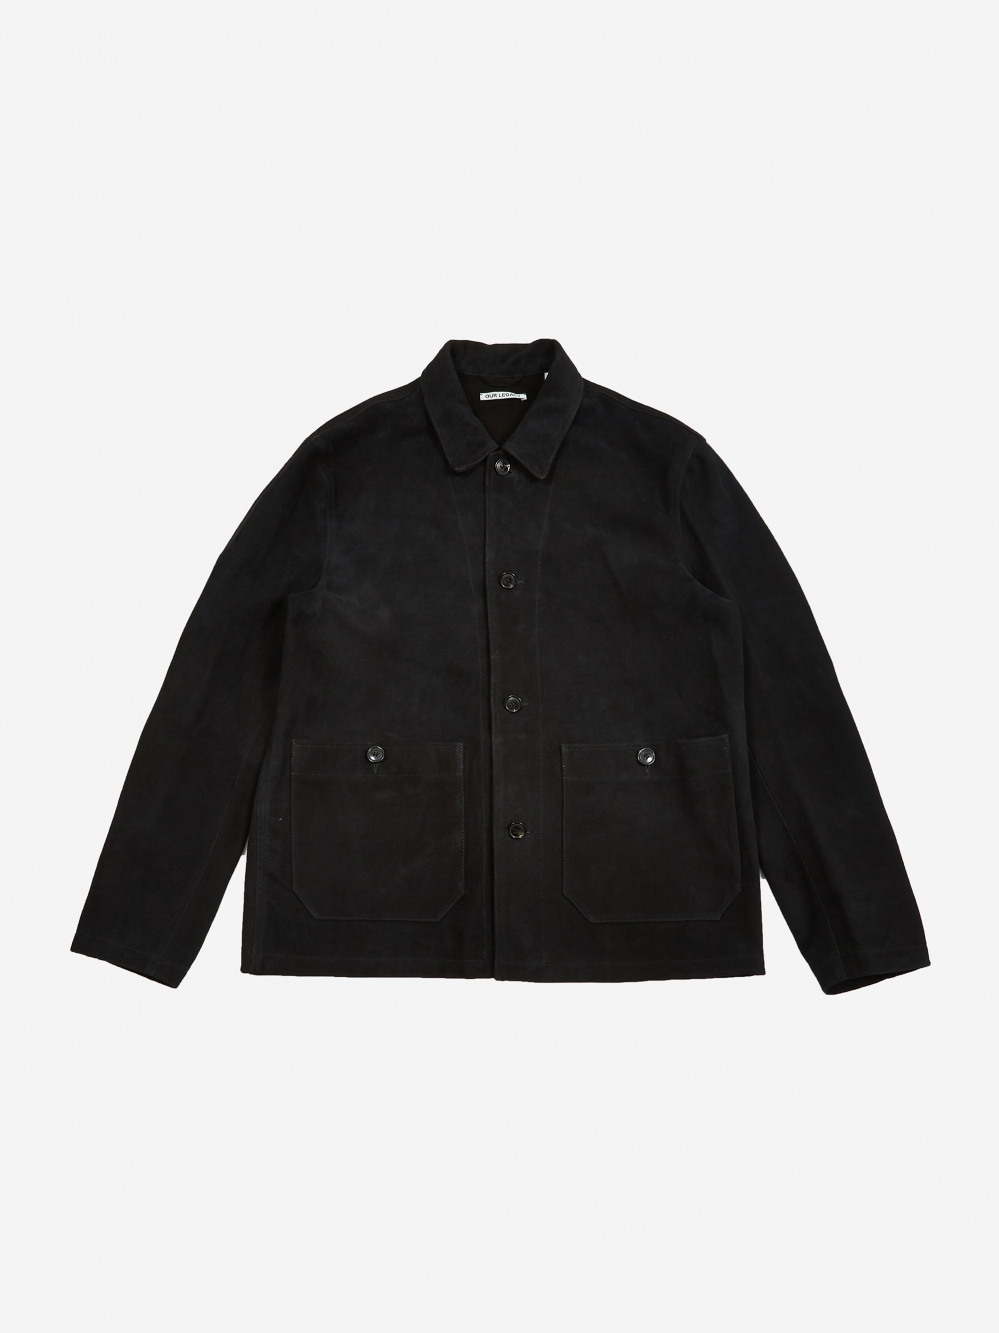 68a566fcd71fe Our Legacy Archive Box Shirt - Black Suede (Image 1)